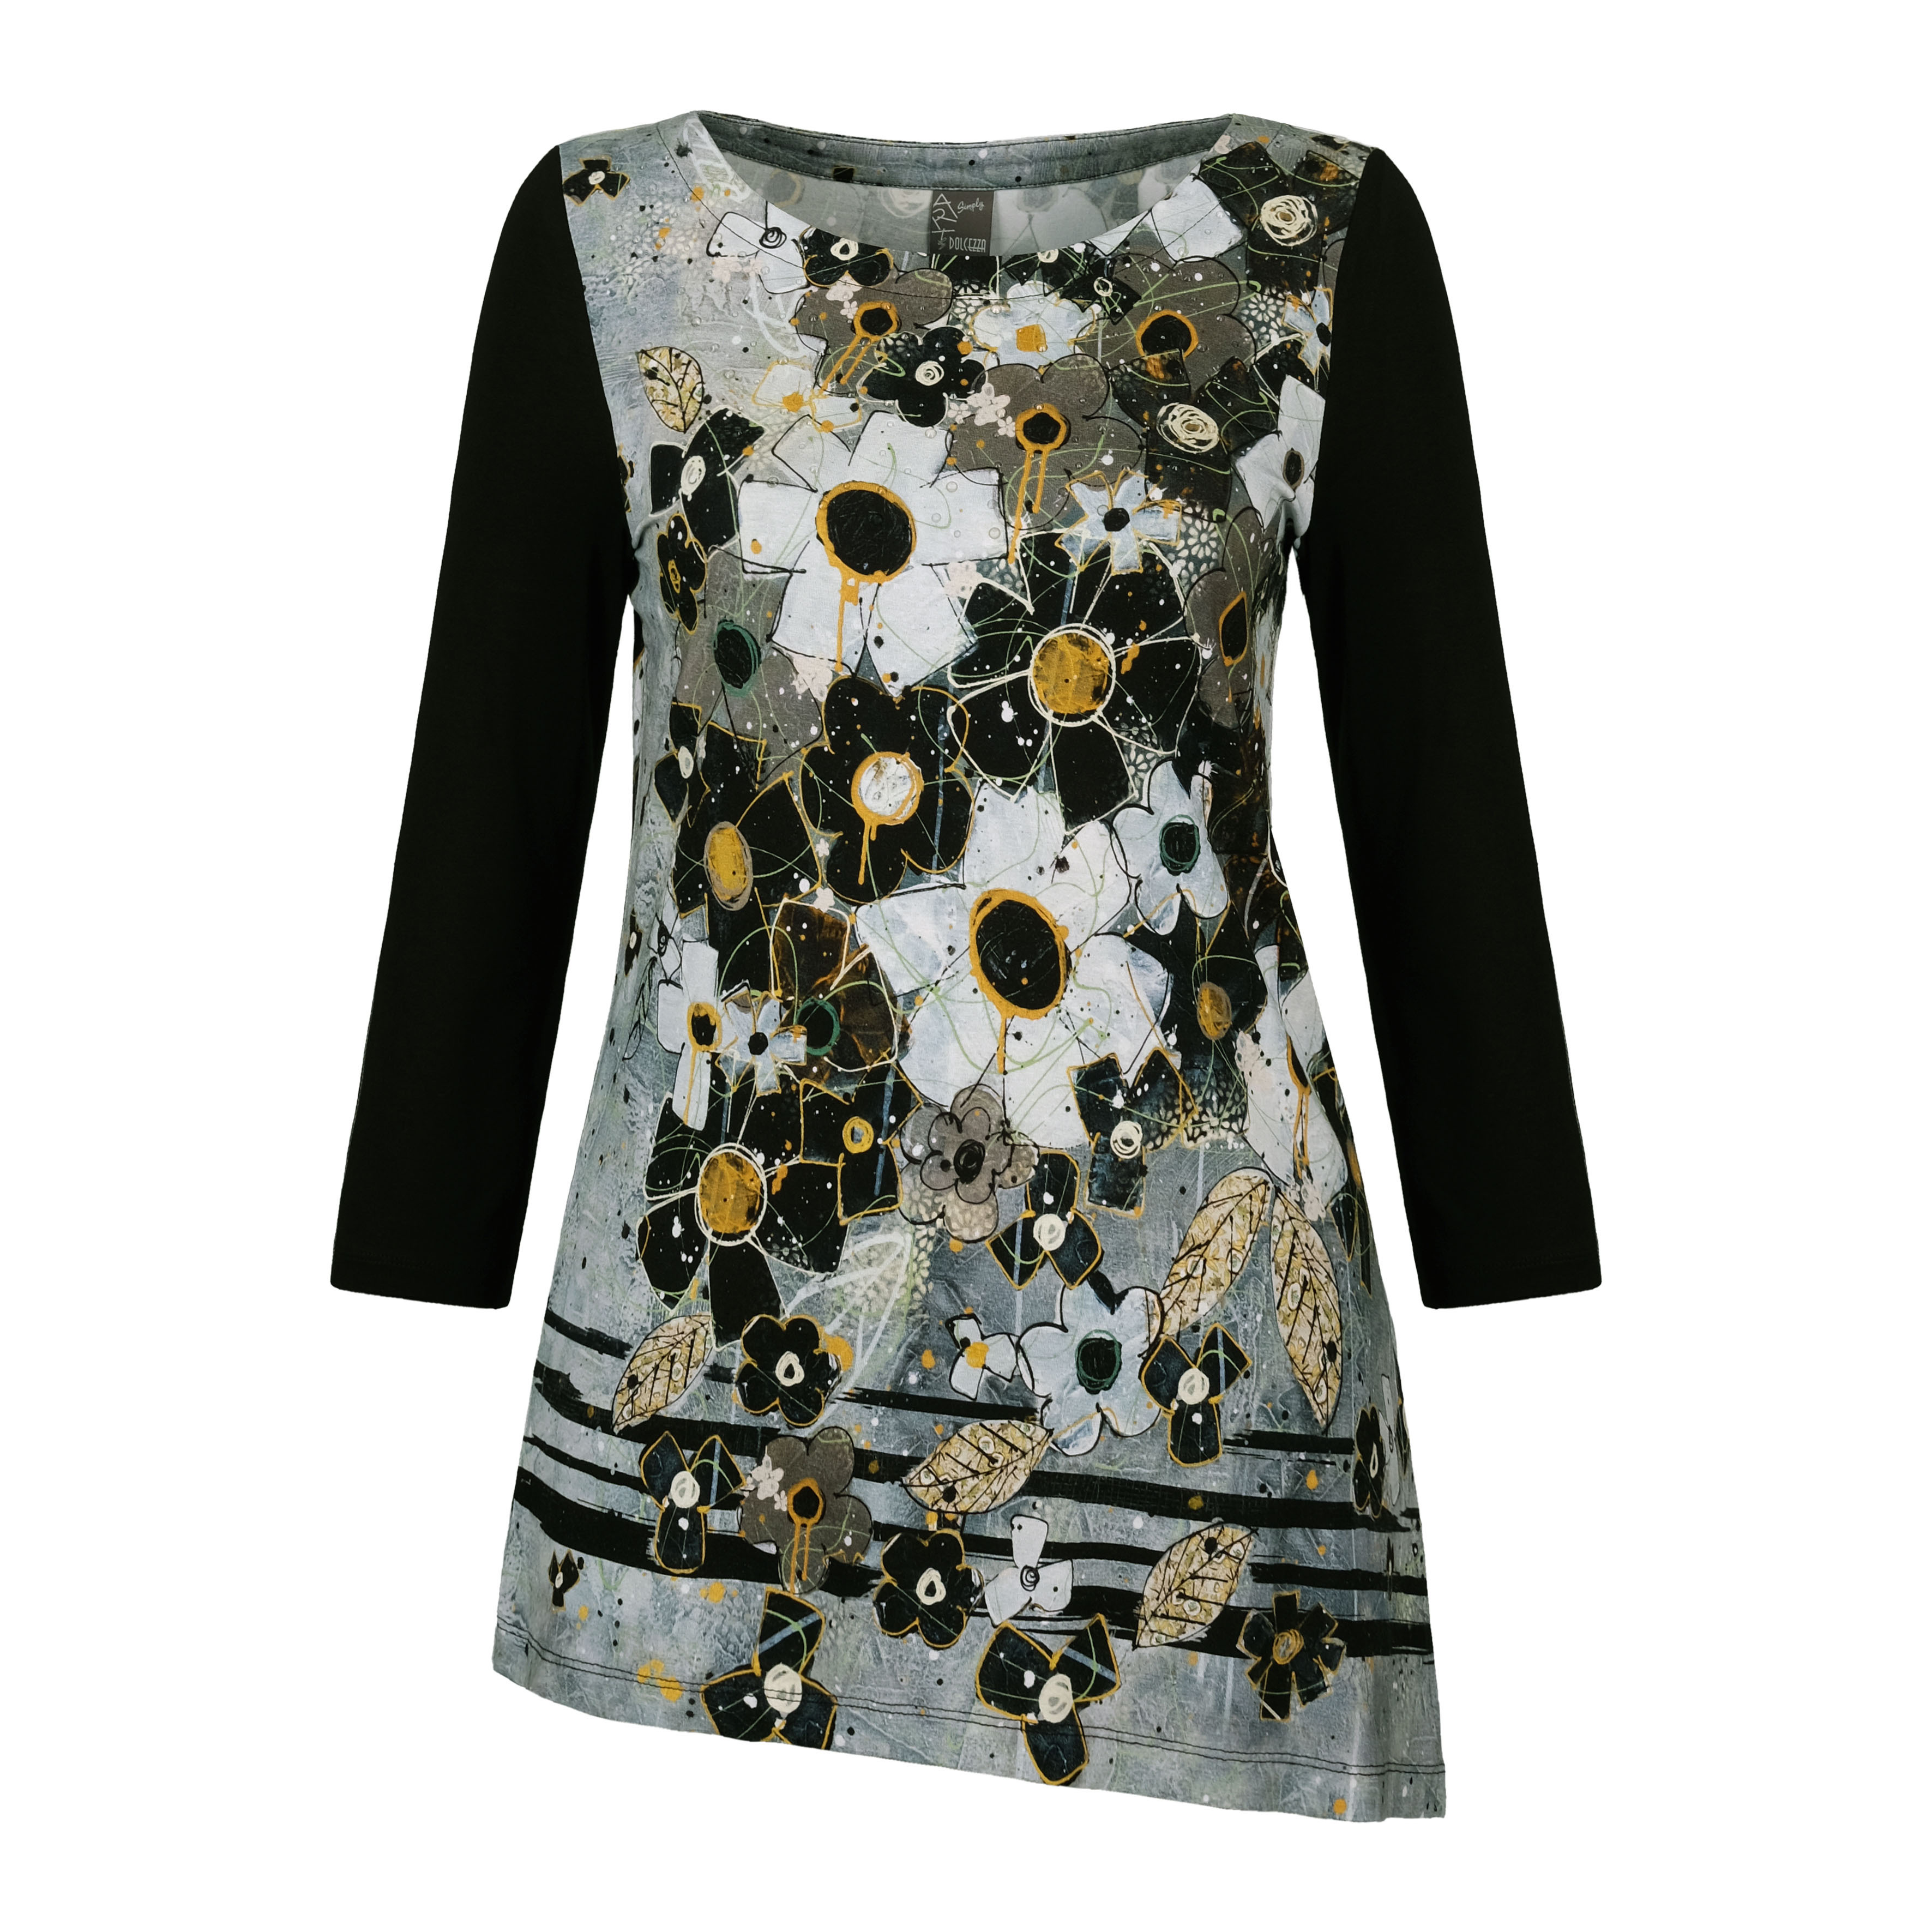 Simply Art Dolcezza: I Am Taking You Home Tonight Abstract Art Asymmetrical Tunic (1 Available at Special Price!) Dolcezza_SimplyArt_70605